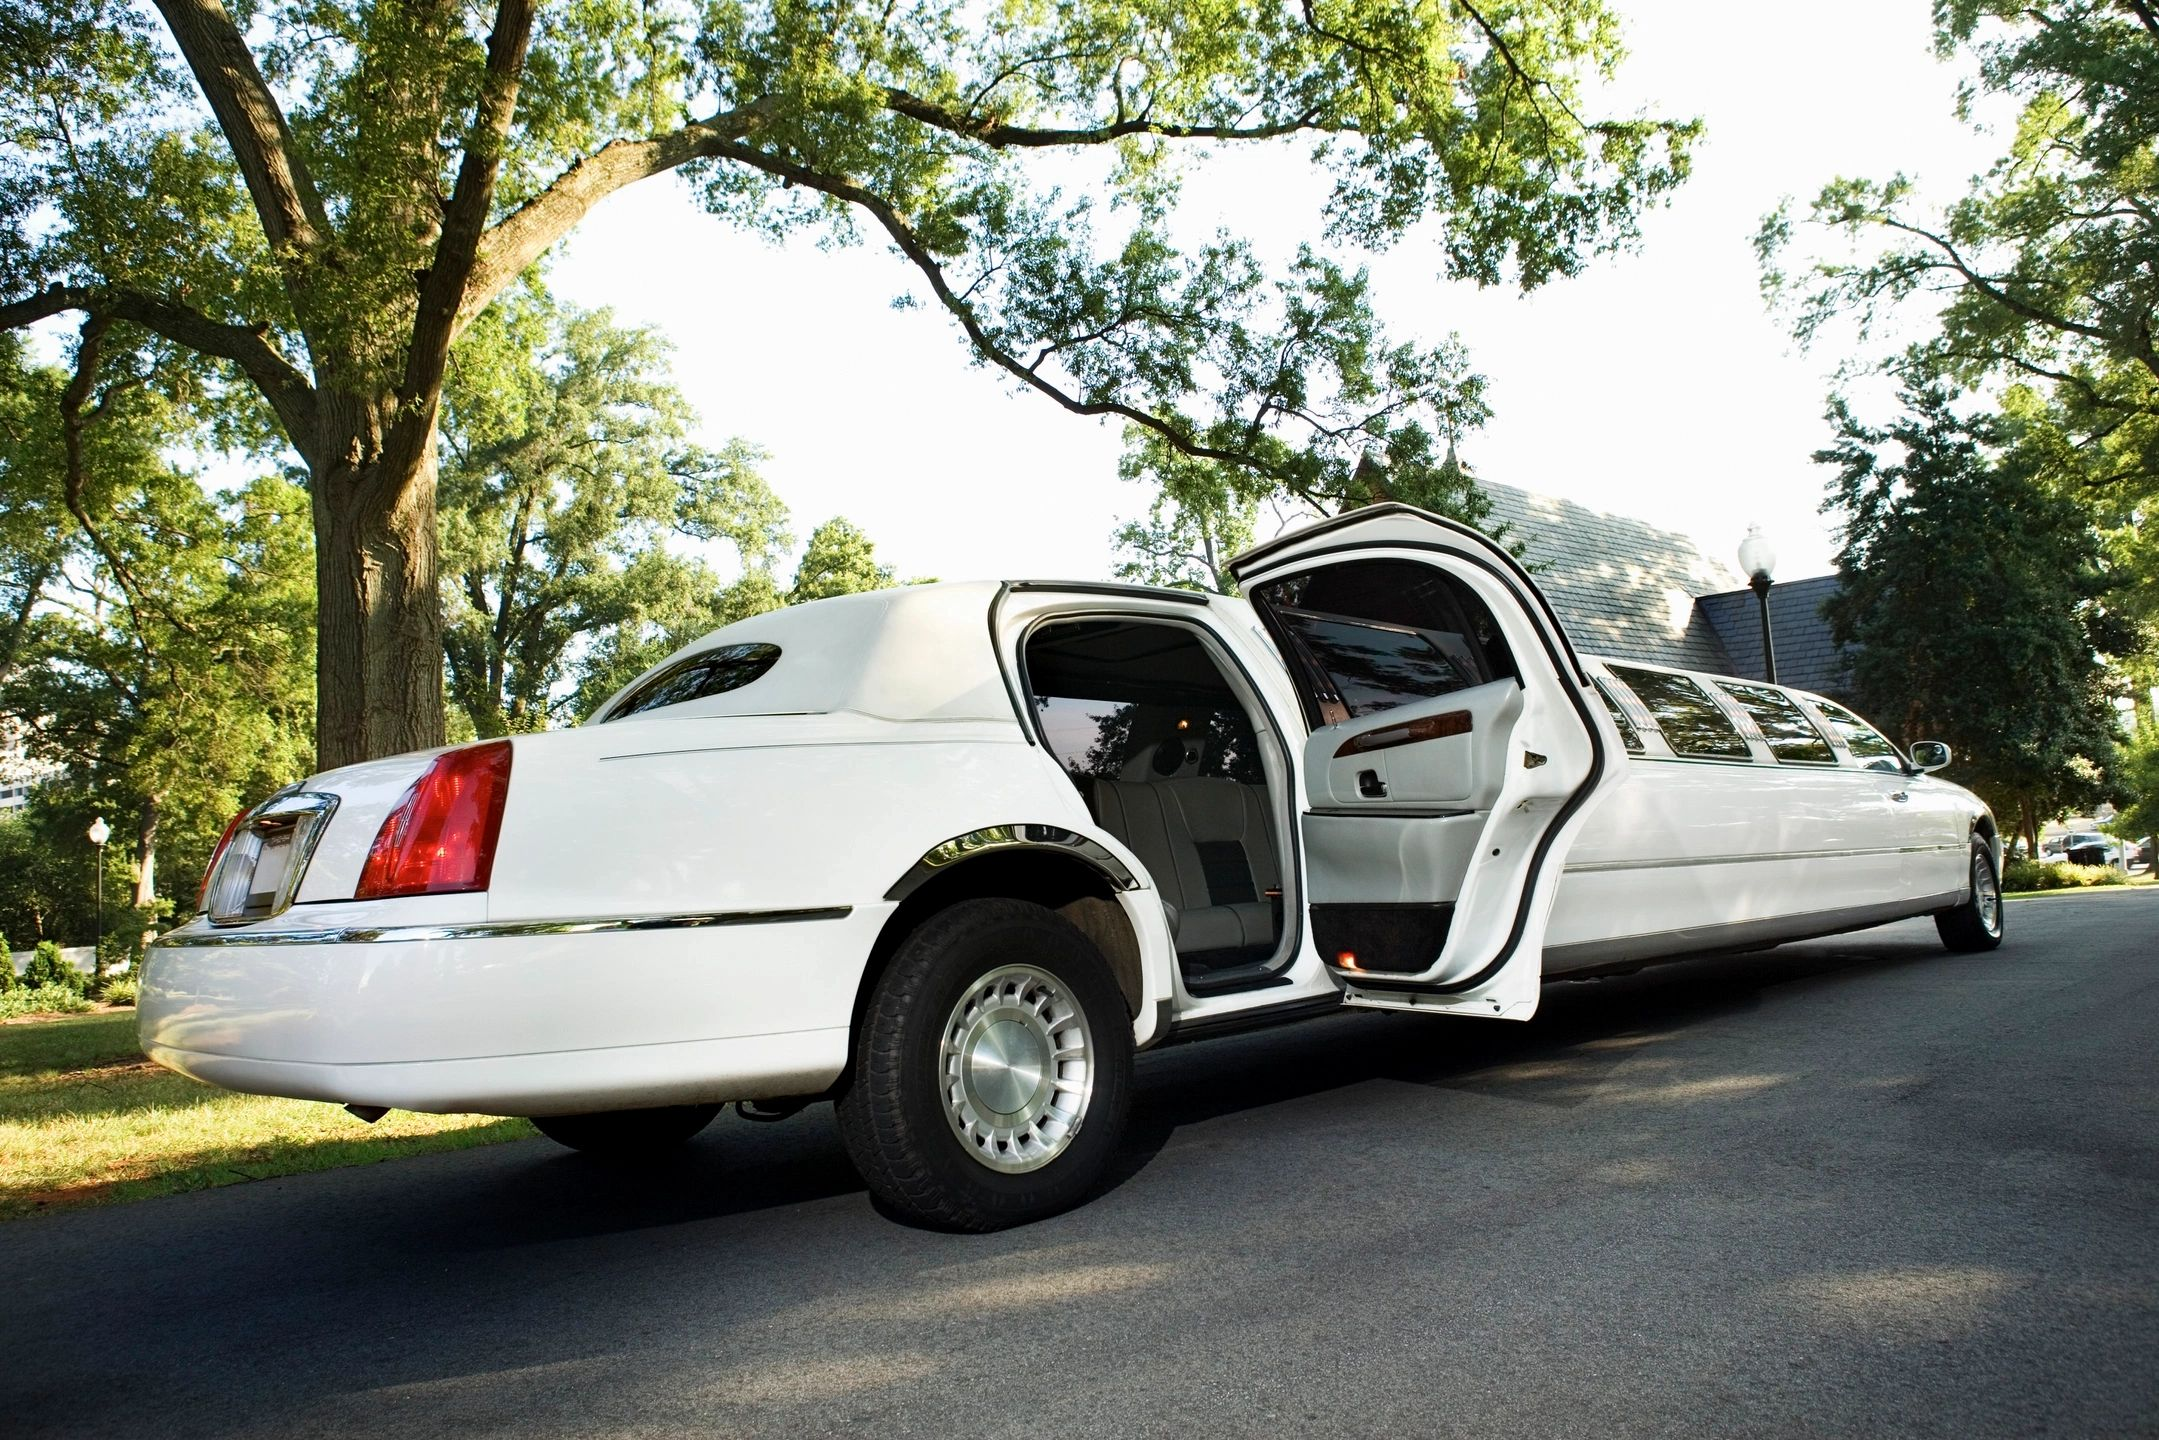 reserve ride, book limo, bakersfield, limousine service, special events